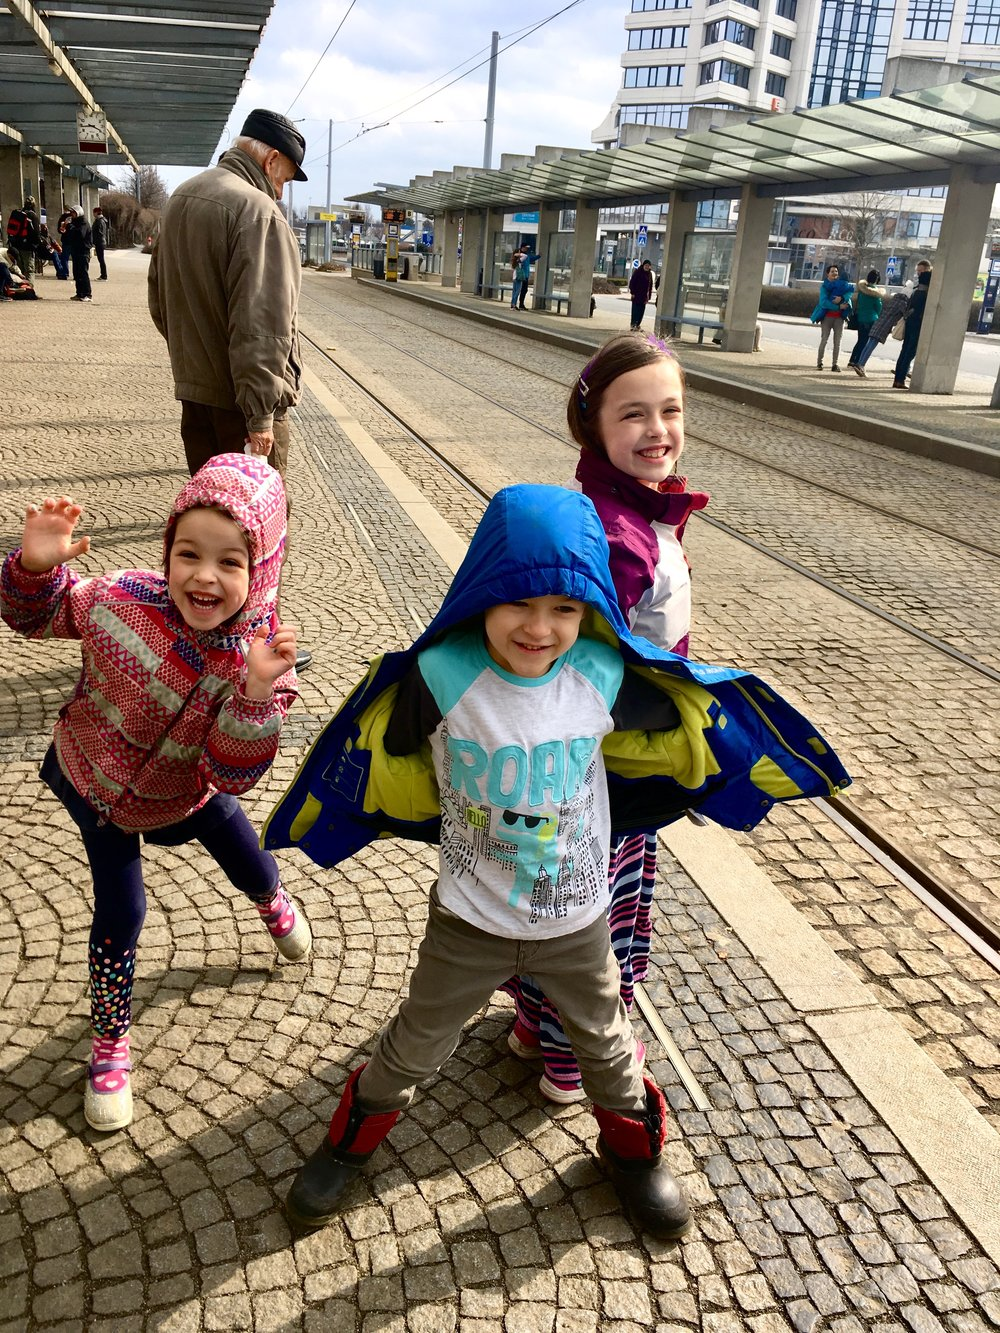 The kids getting ready for a ride on the Tram.